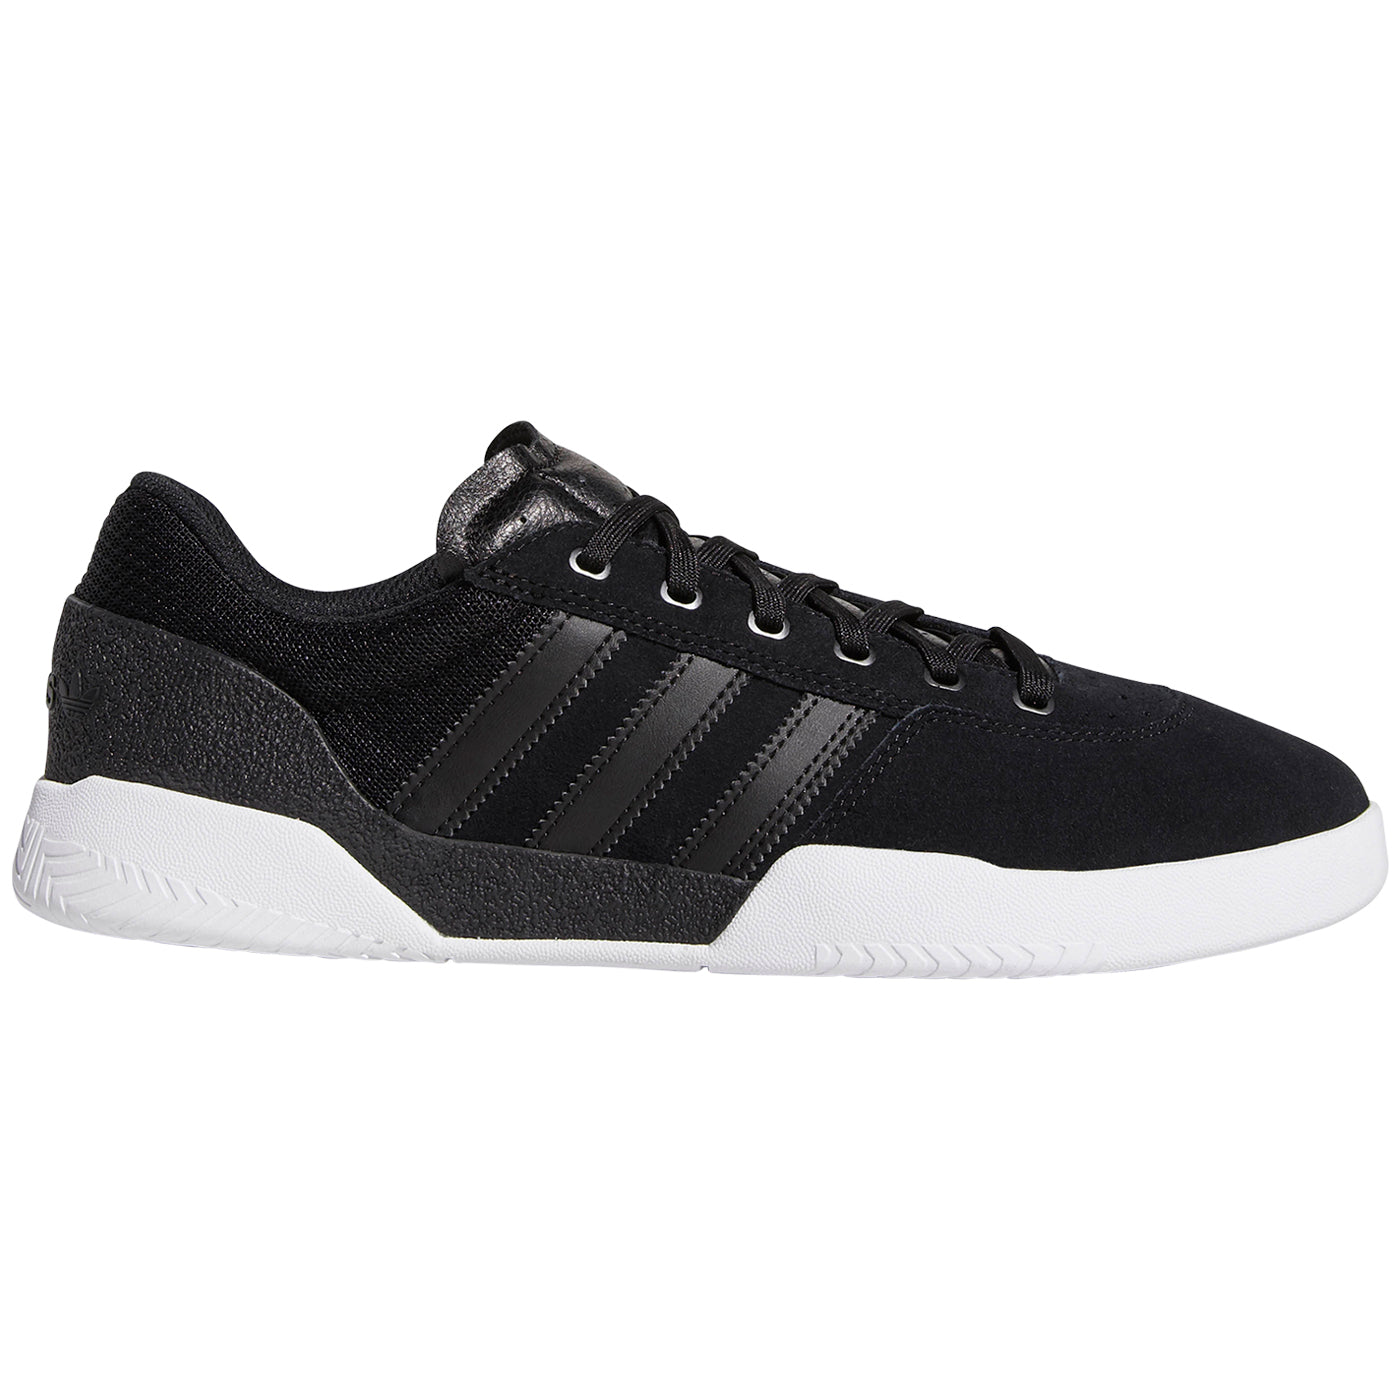 new product 88c49 6f48d Adidas City Cup Shoes - Core Black  Core Black  Footwear White